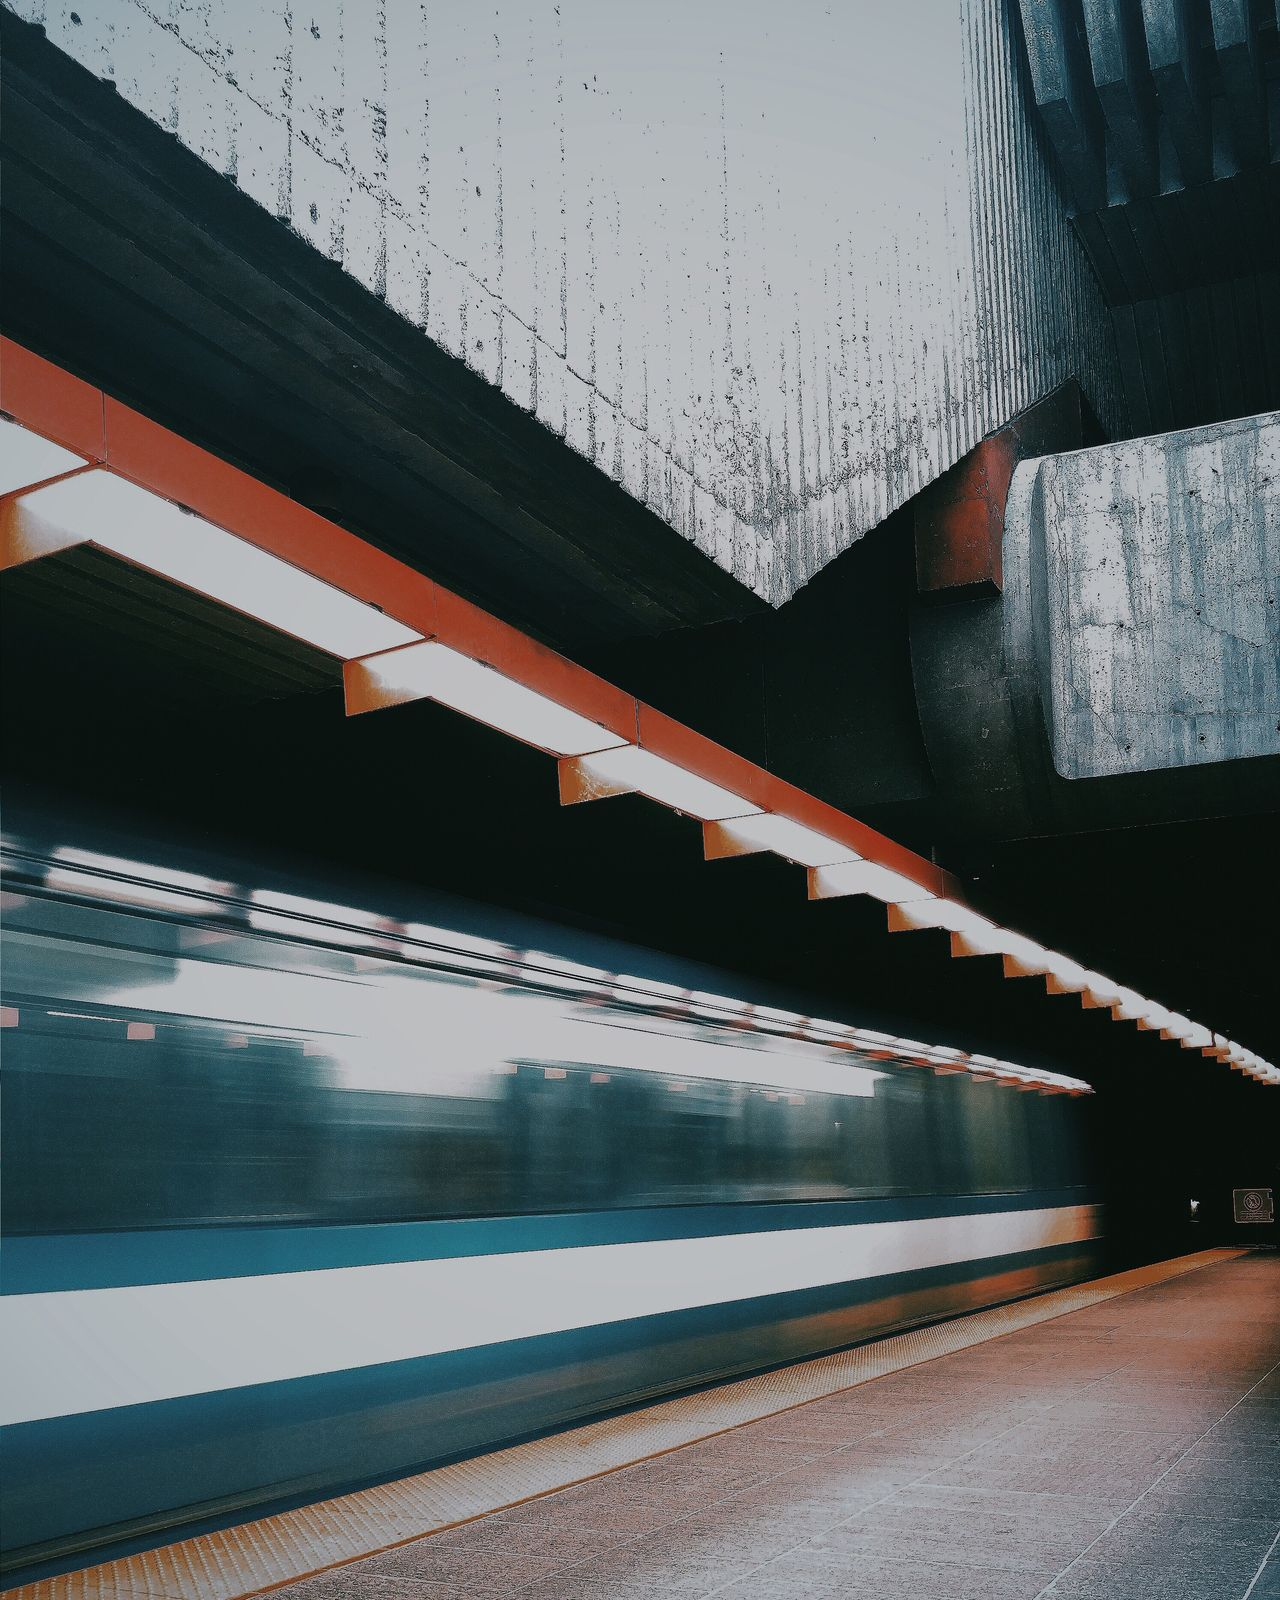 Mtl metro. Transportation Motion Speed Railroad Station Platform Rail Transportation Long Exposure Blurred Motion Mtlmetro Mtlmetroproject Lgg4photography Public Transportation Subway Station Public Transport Subway Train Journey Long Lit No People